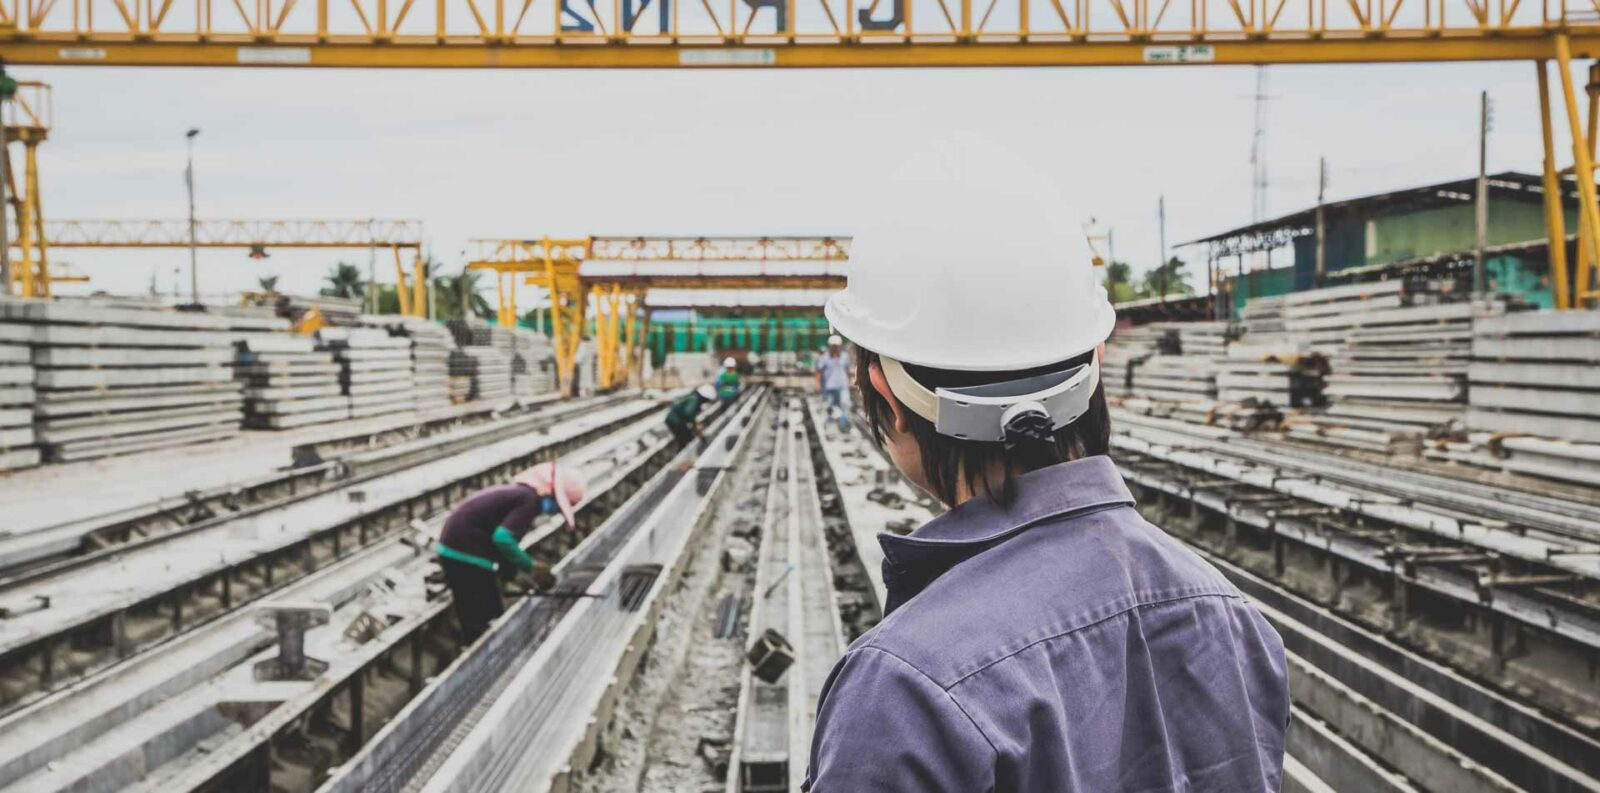 Construction Site Accident Injury Lawyer   Jeffrey M. Bloom